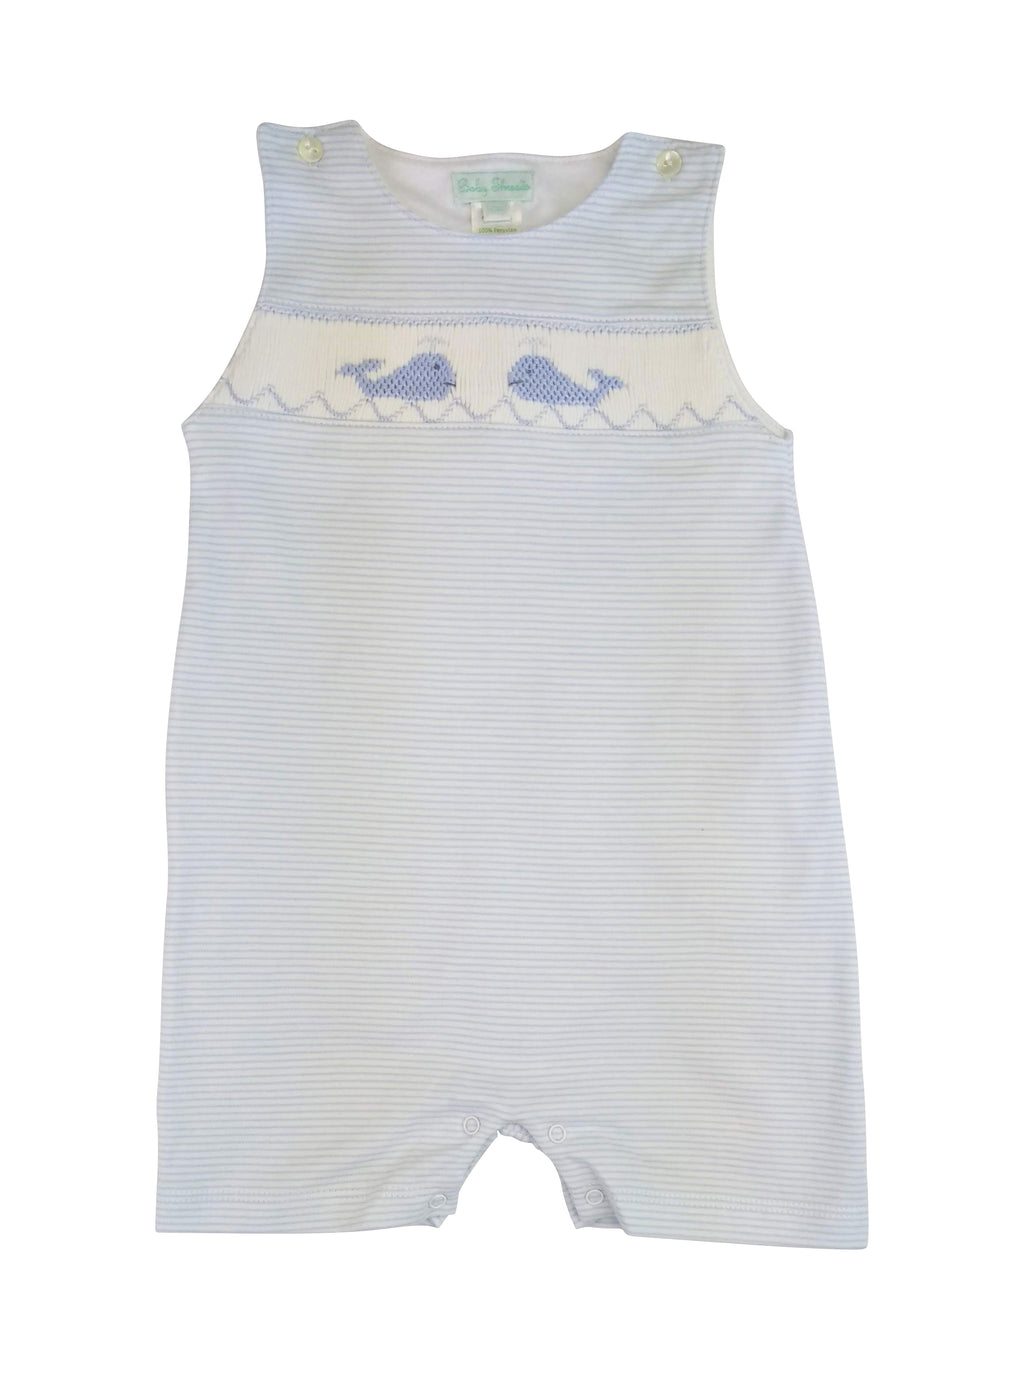 Baby Boy's Blue Whale Hand Smocked Overall - Little Threads Inc. Children's Clothing